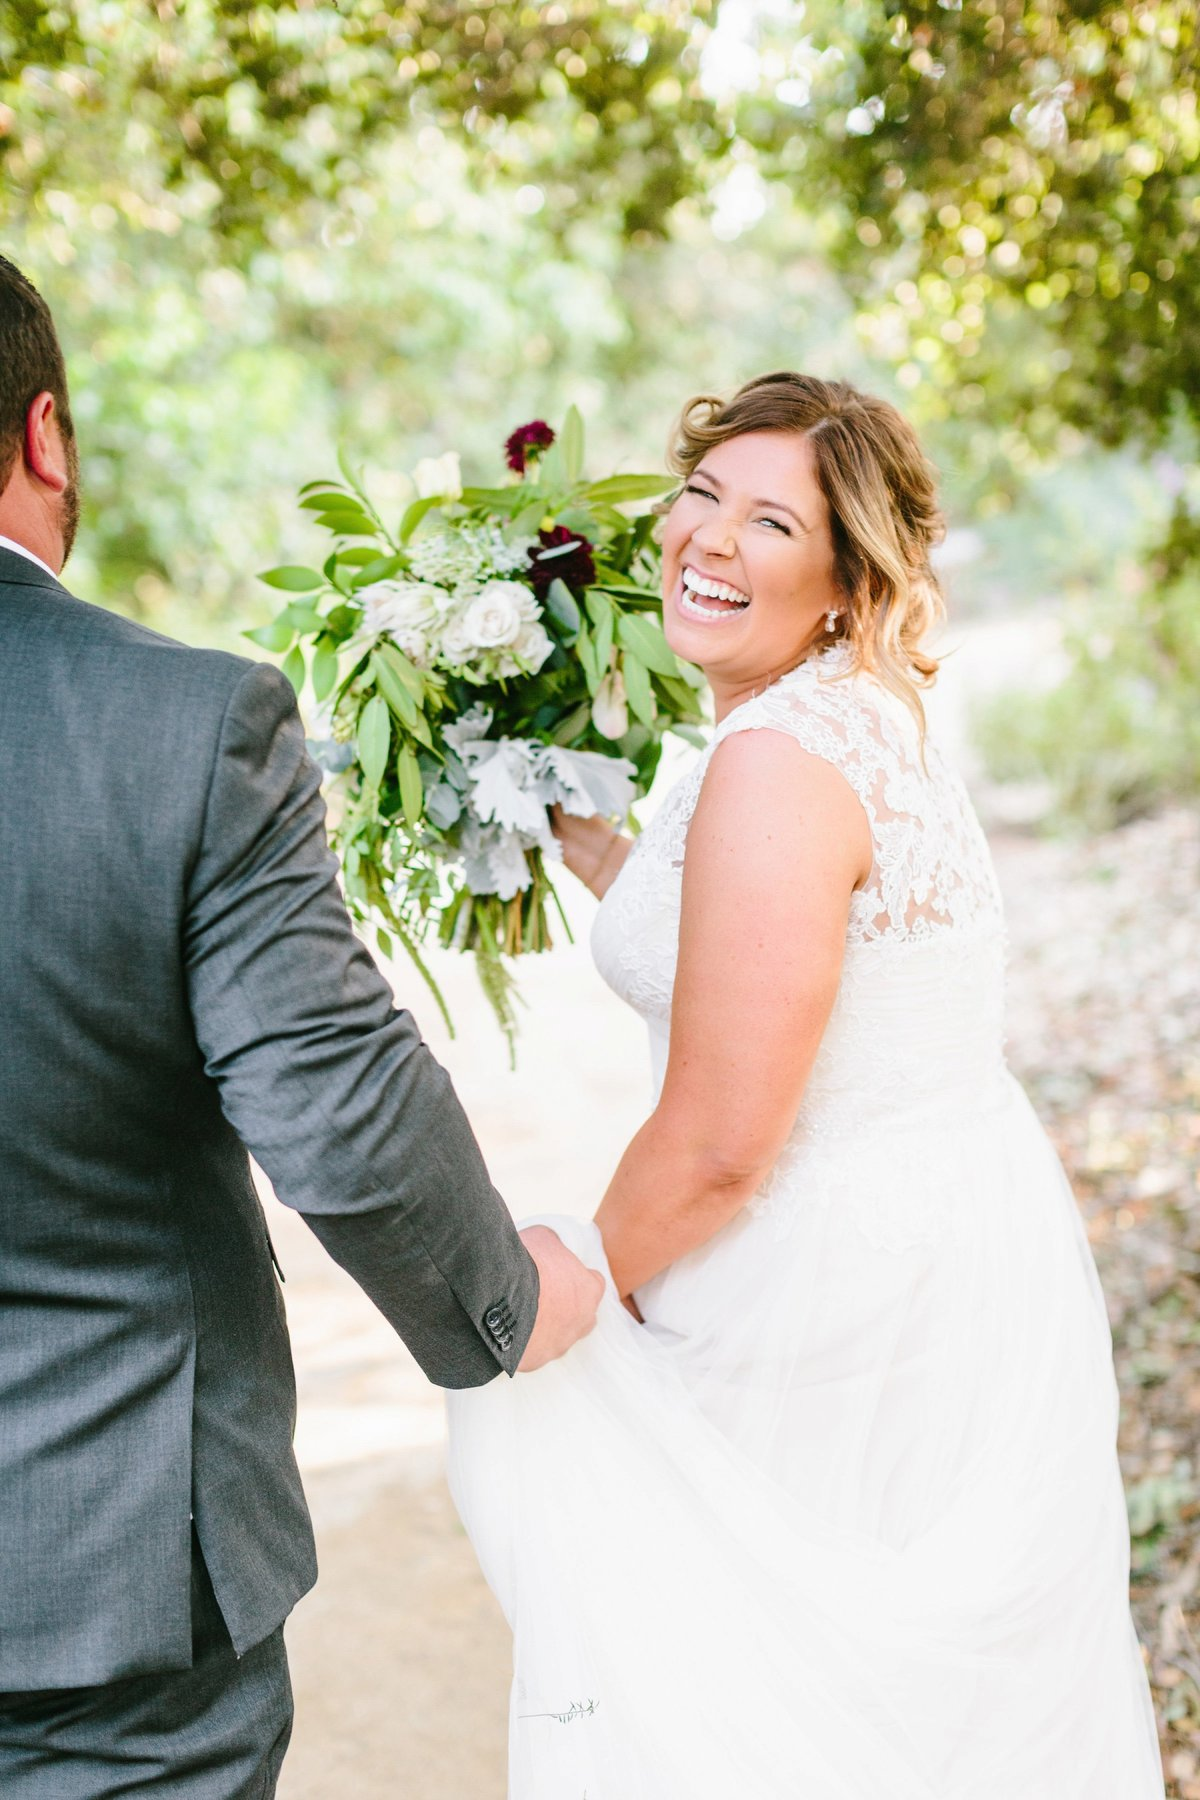 Best California Wedding Photographer-Jodee Debes Photography-71